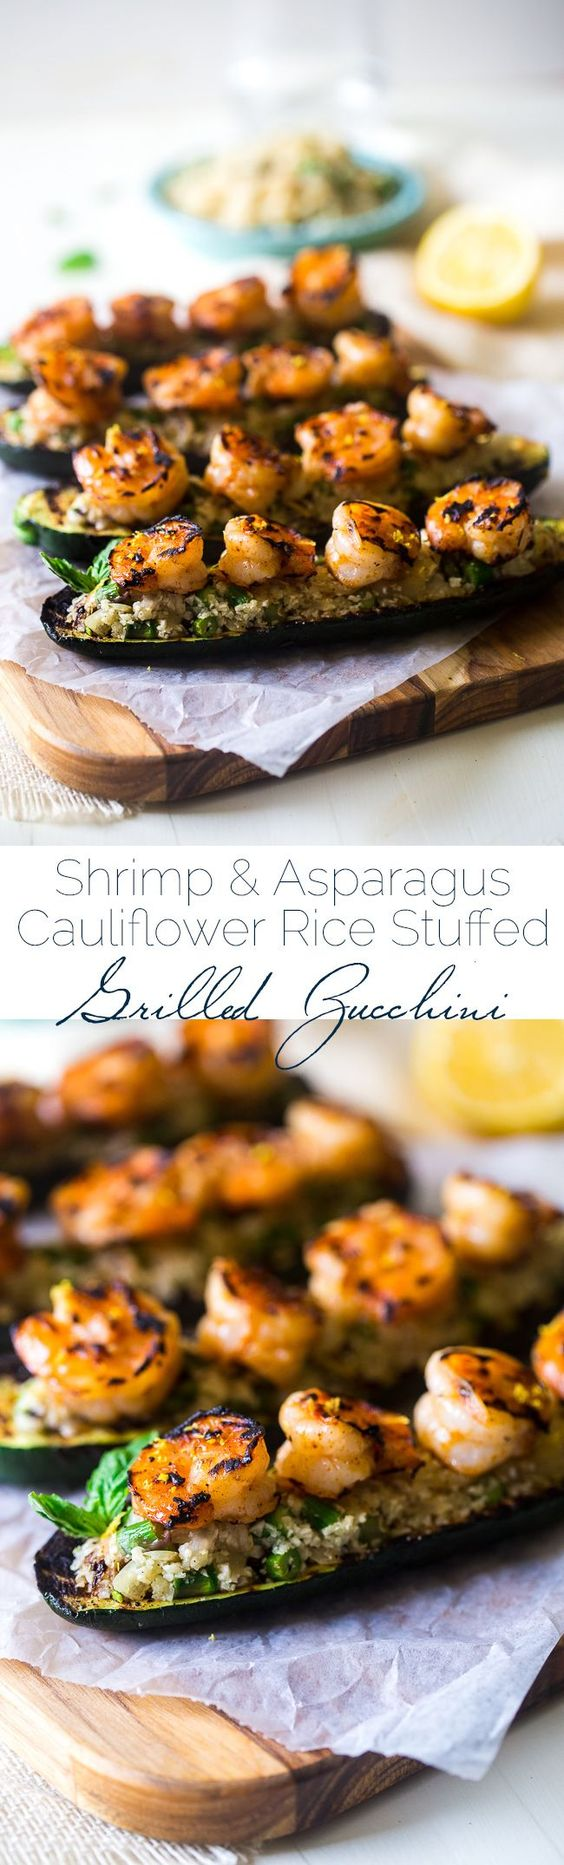 Paleo Lemon Asparagus Cauliflower Rice Stuffed Grilled Zucchini With Shrimp - Cauliflower rice is mixed with vegetables and fresh lemon, stuffed into grilled zucchini and topped with shrimp. An easy, gluten free, and healthy meal, that is under 200 calori